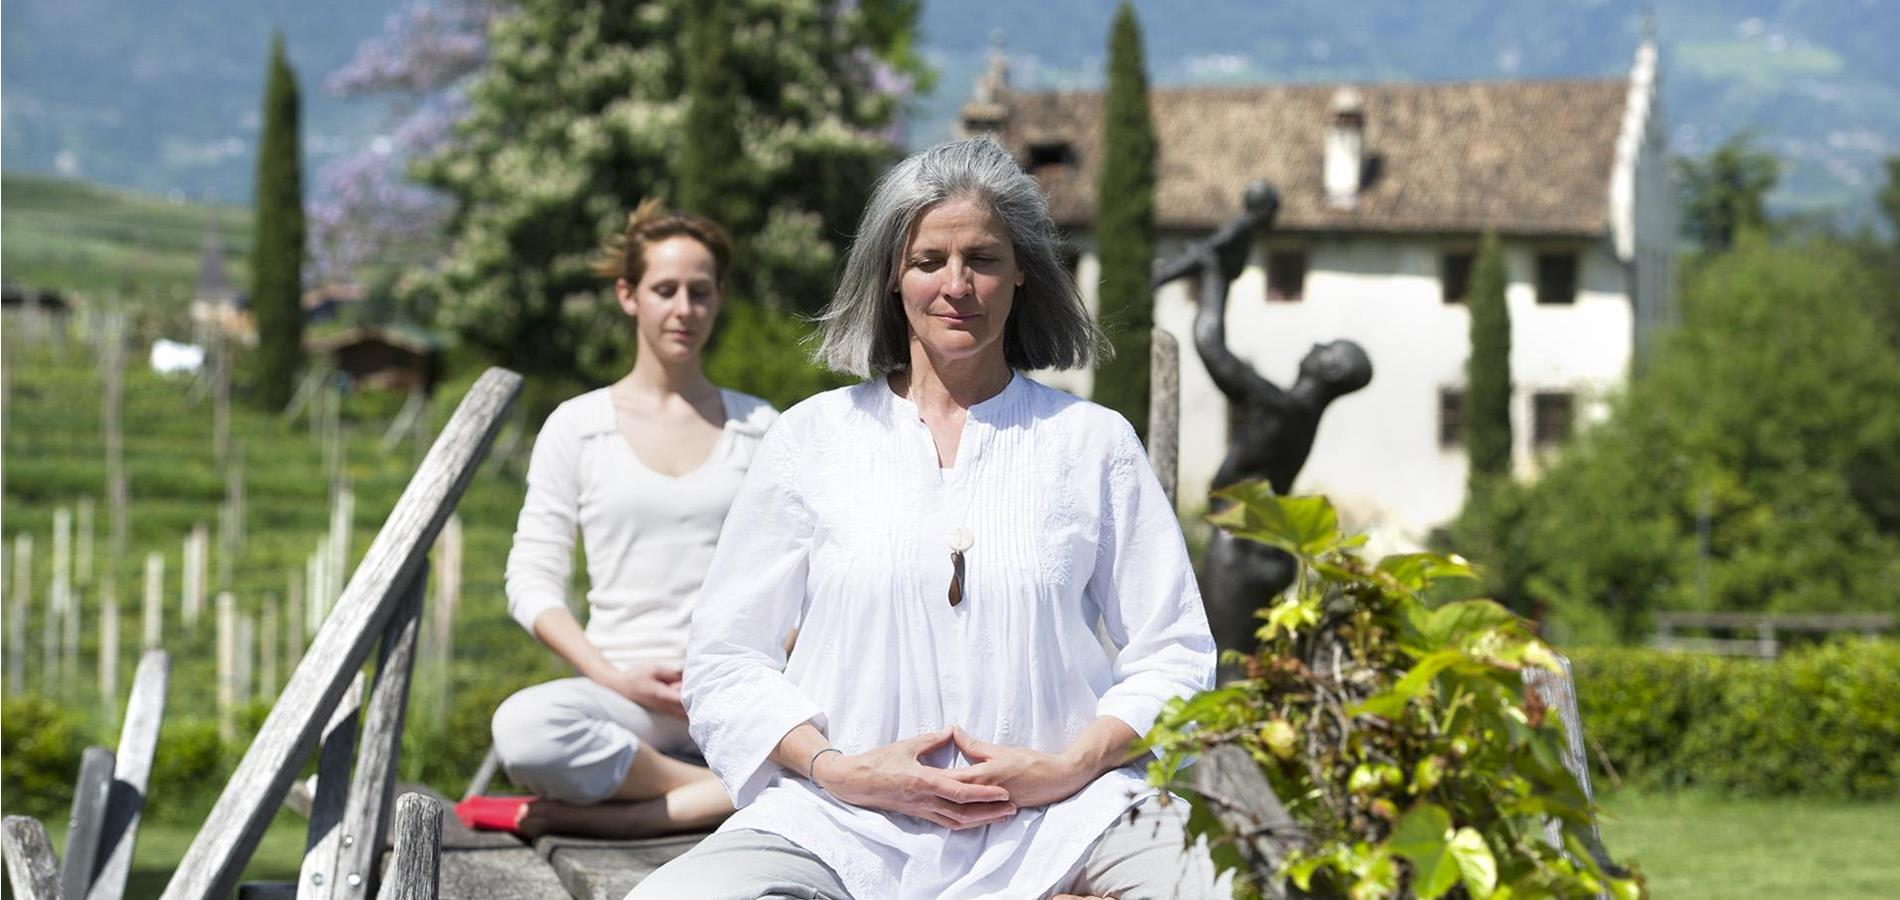 Meditation and Contemplation in Lana and Surroundings